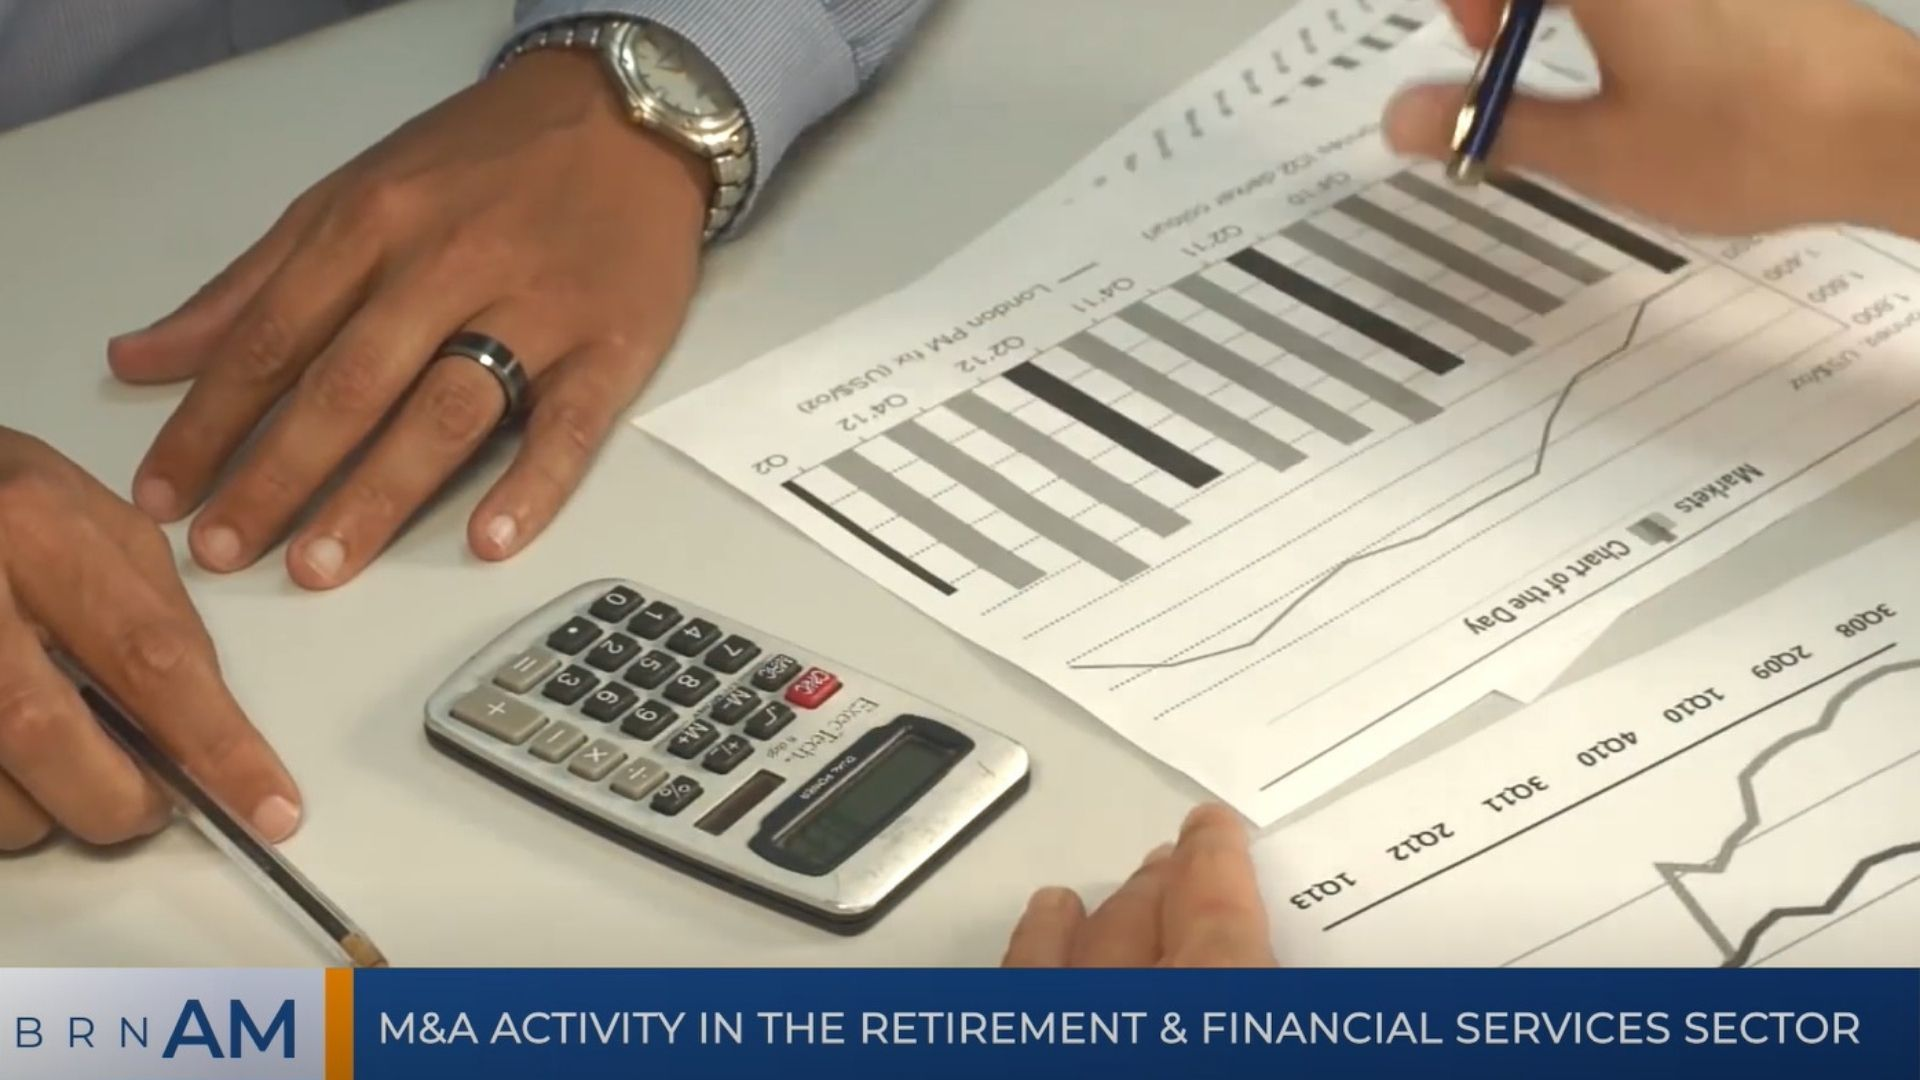 BRN AM | M&A activity in the retirement & financial services sector